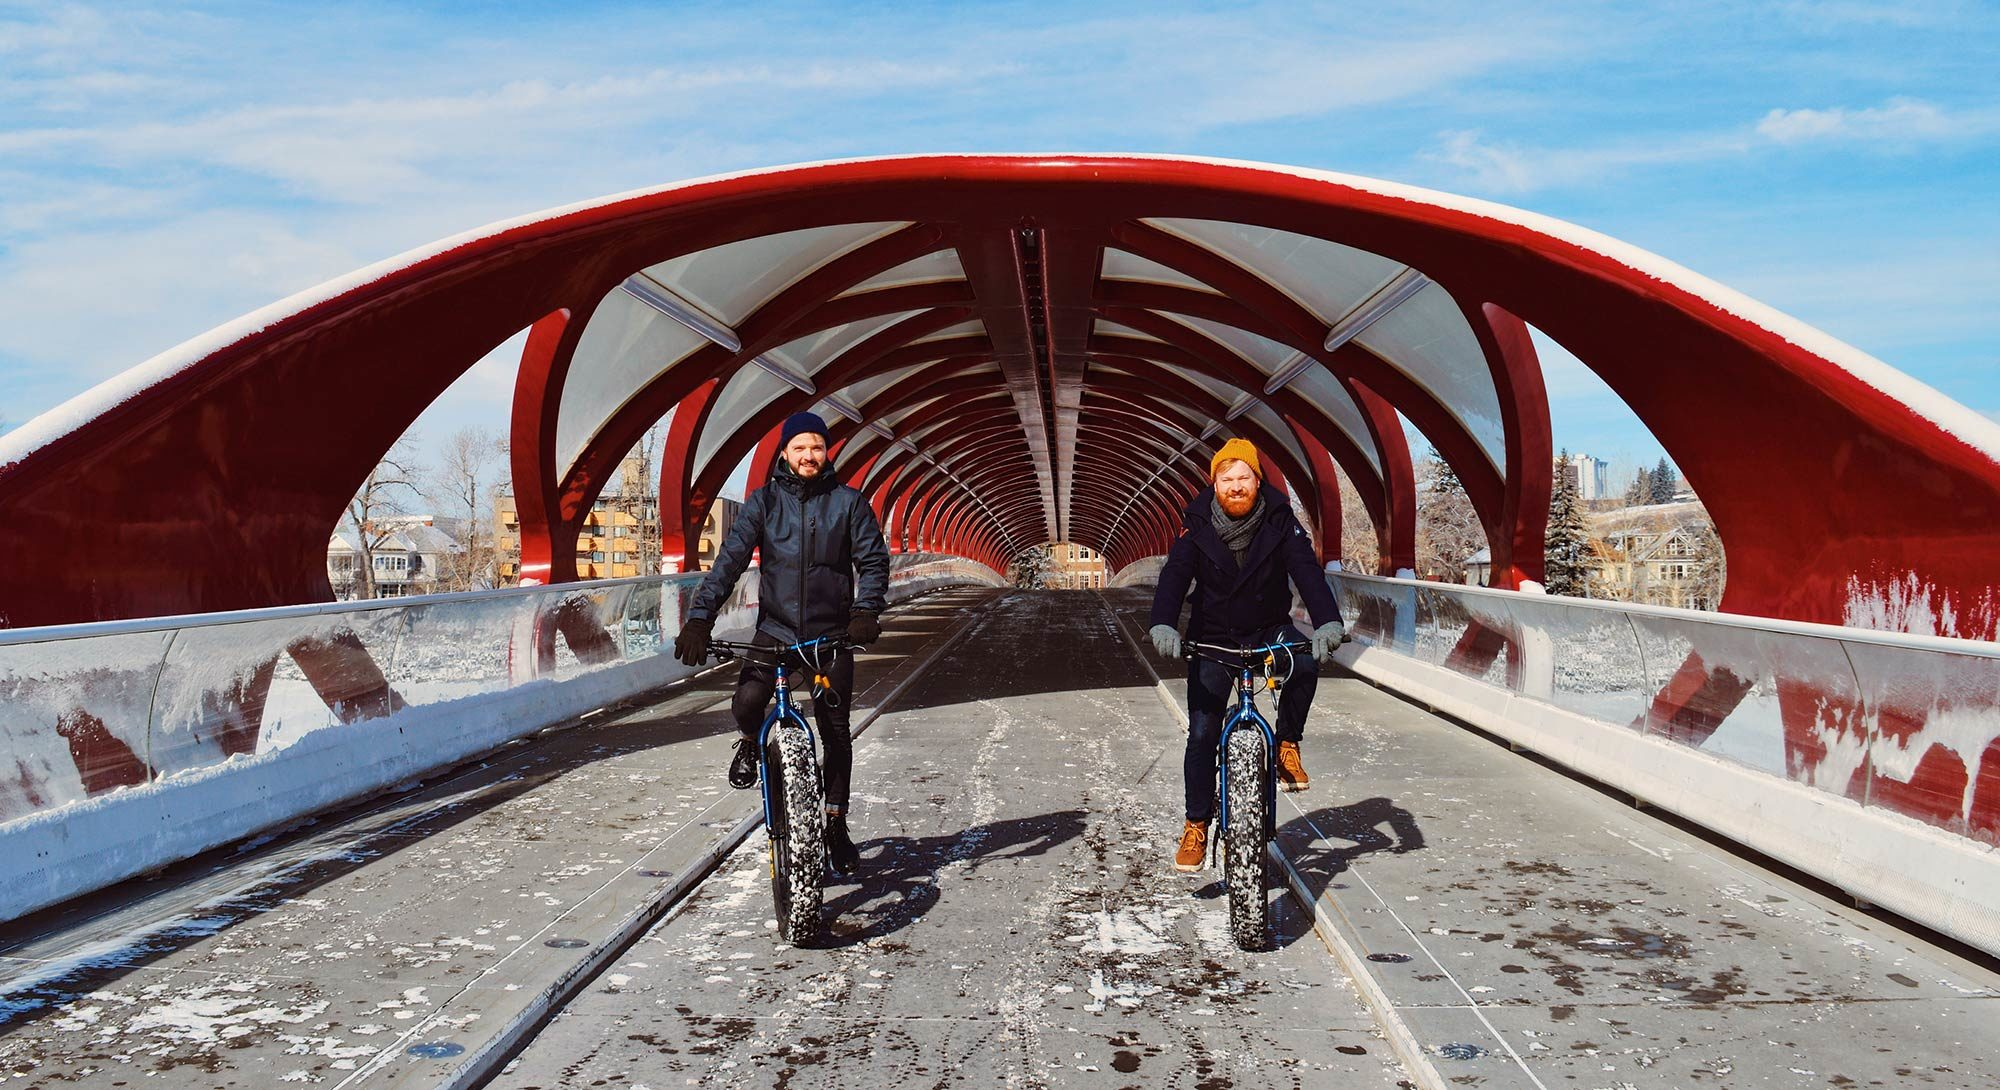 Karl & Daan in front of the red Peace Bridge by Calatrava | Fat Tire Biking Calgary Nomadic Mobile Gear © CoupleofMen.com